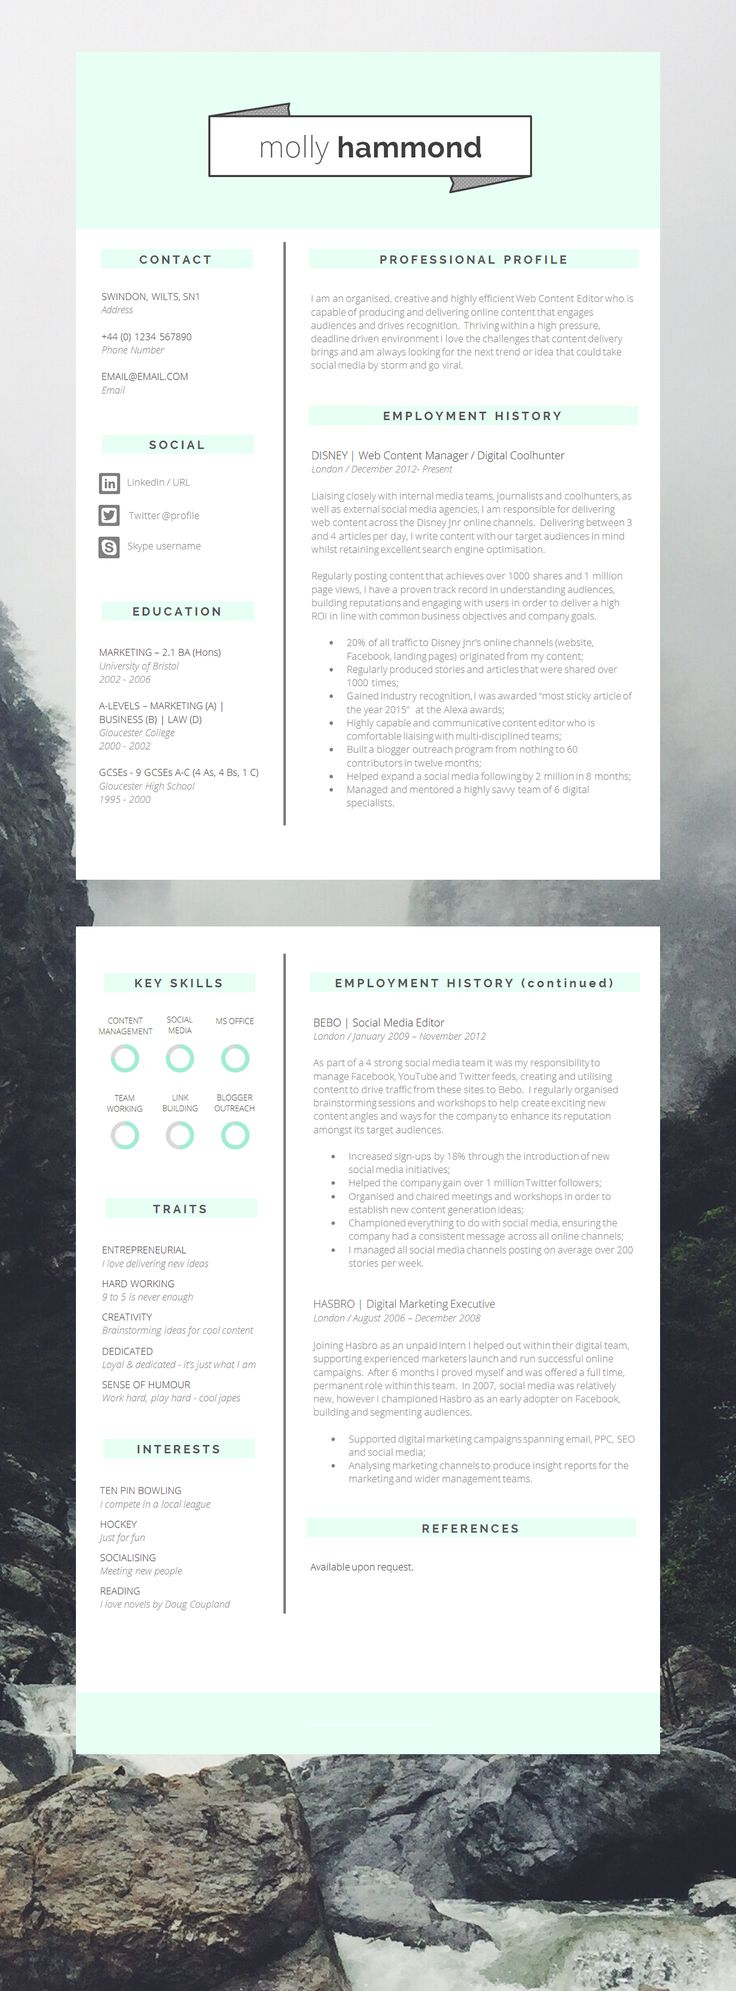 Creative CV Template Matching Cover Letter